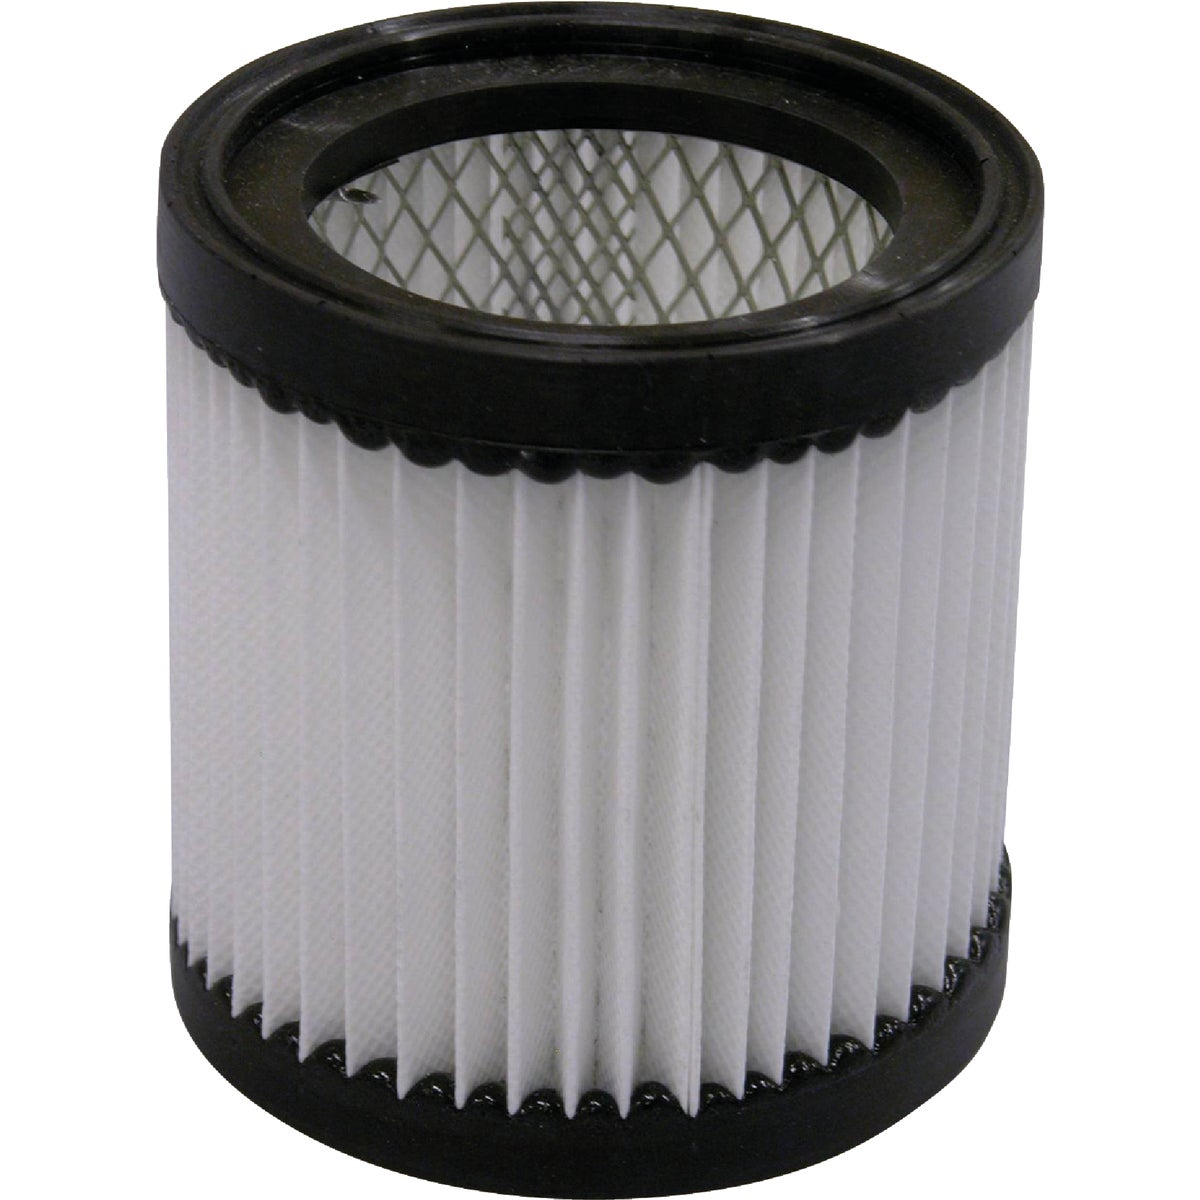 ASH VACUUM FILTER - 411 by Meeco Mfg